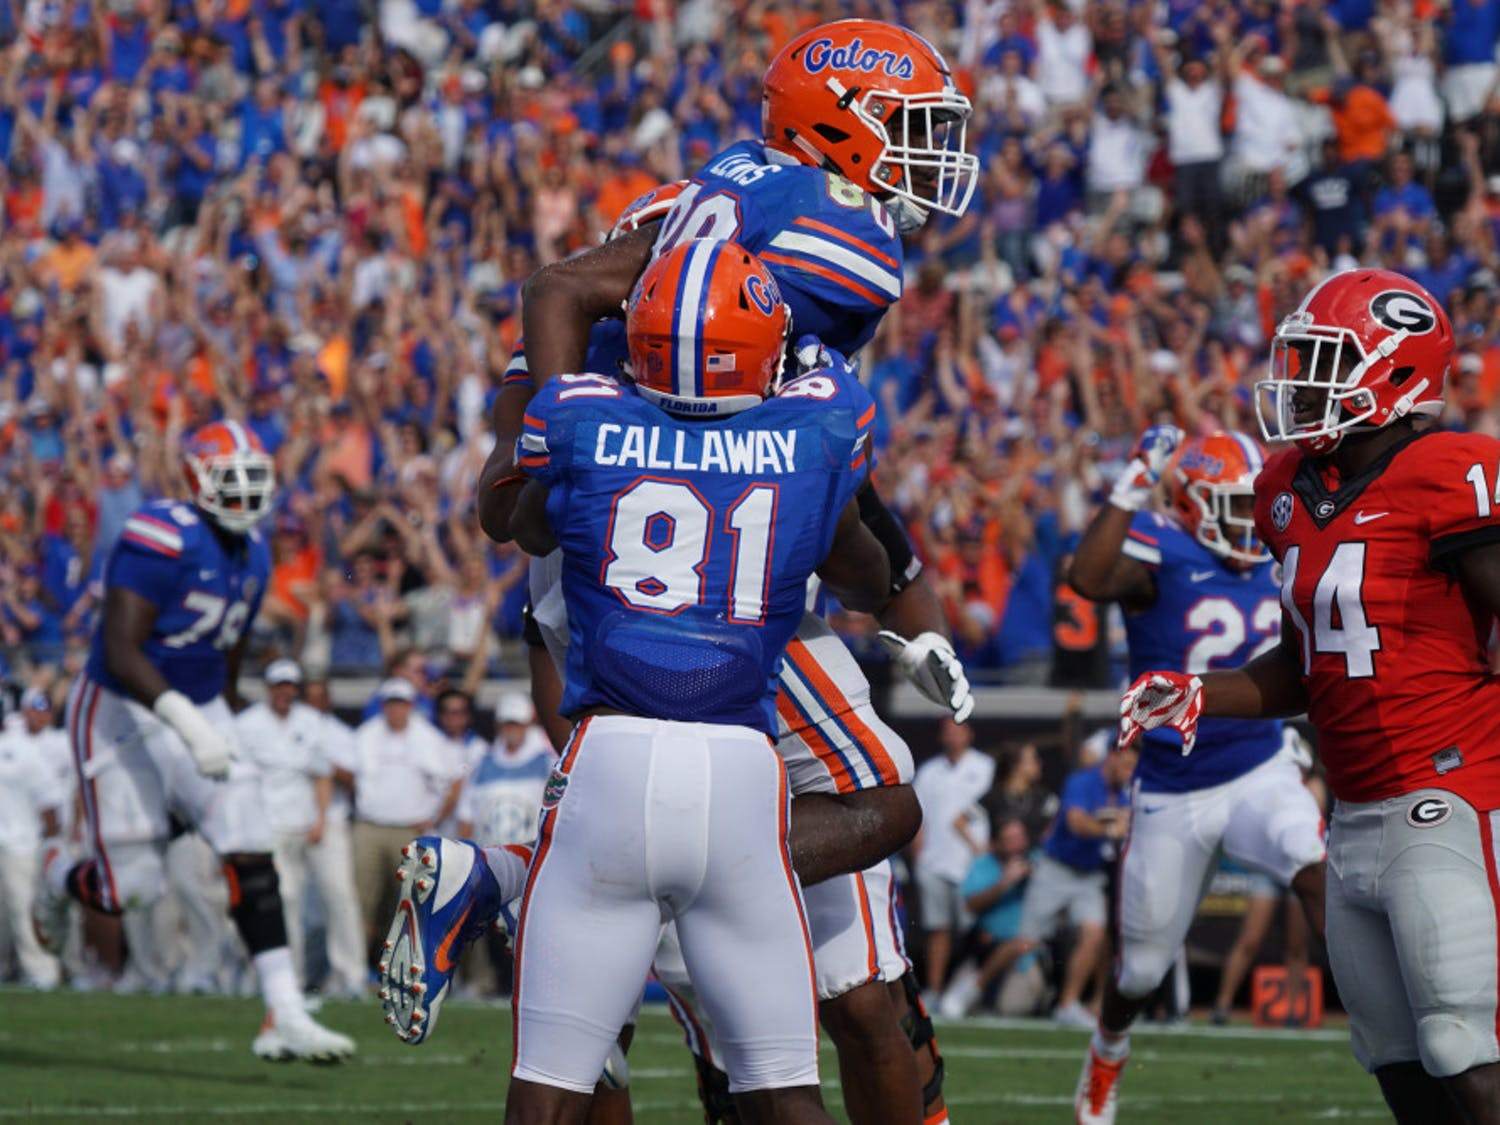 Antonio Callaway celebrates with C'yontai Lewis during UF's 24-10 win over Georgia on Oct. 29 at EverBank Field.